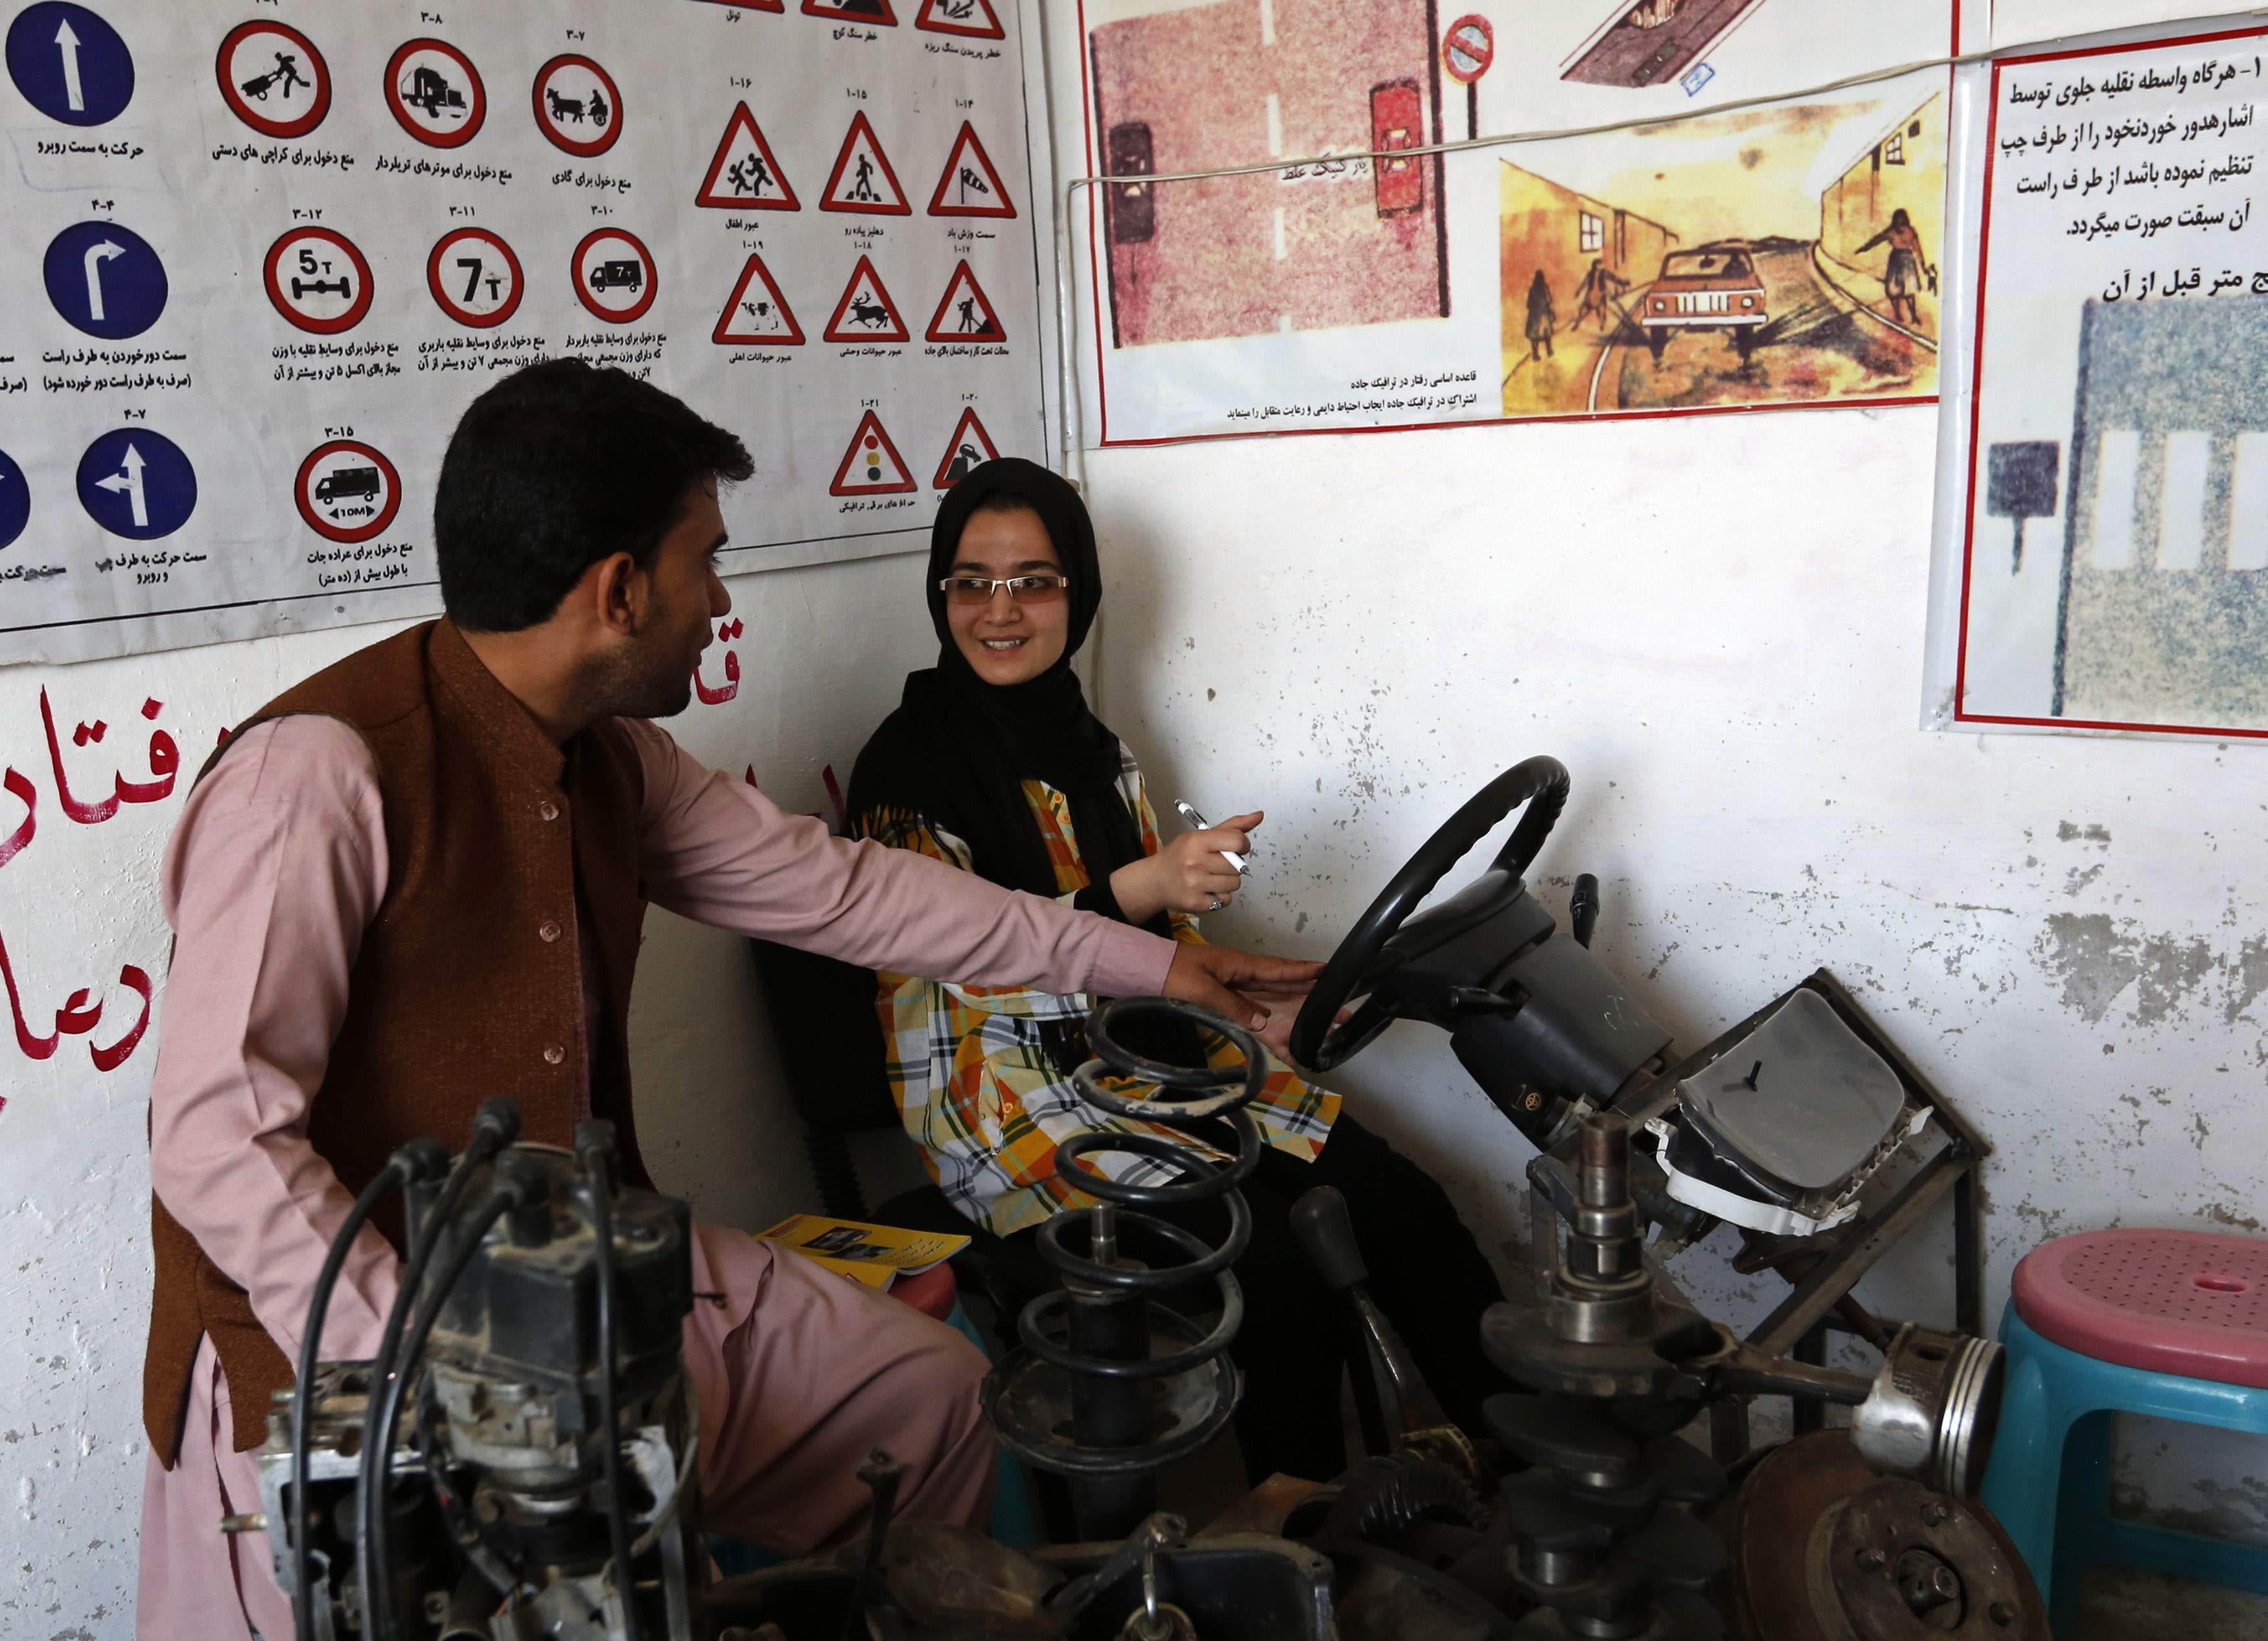 Women learn to drive in Kabul to escape unwanted gazes and physical harassment on public transportation